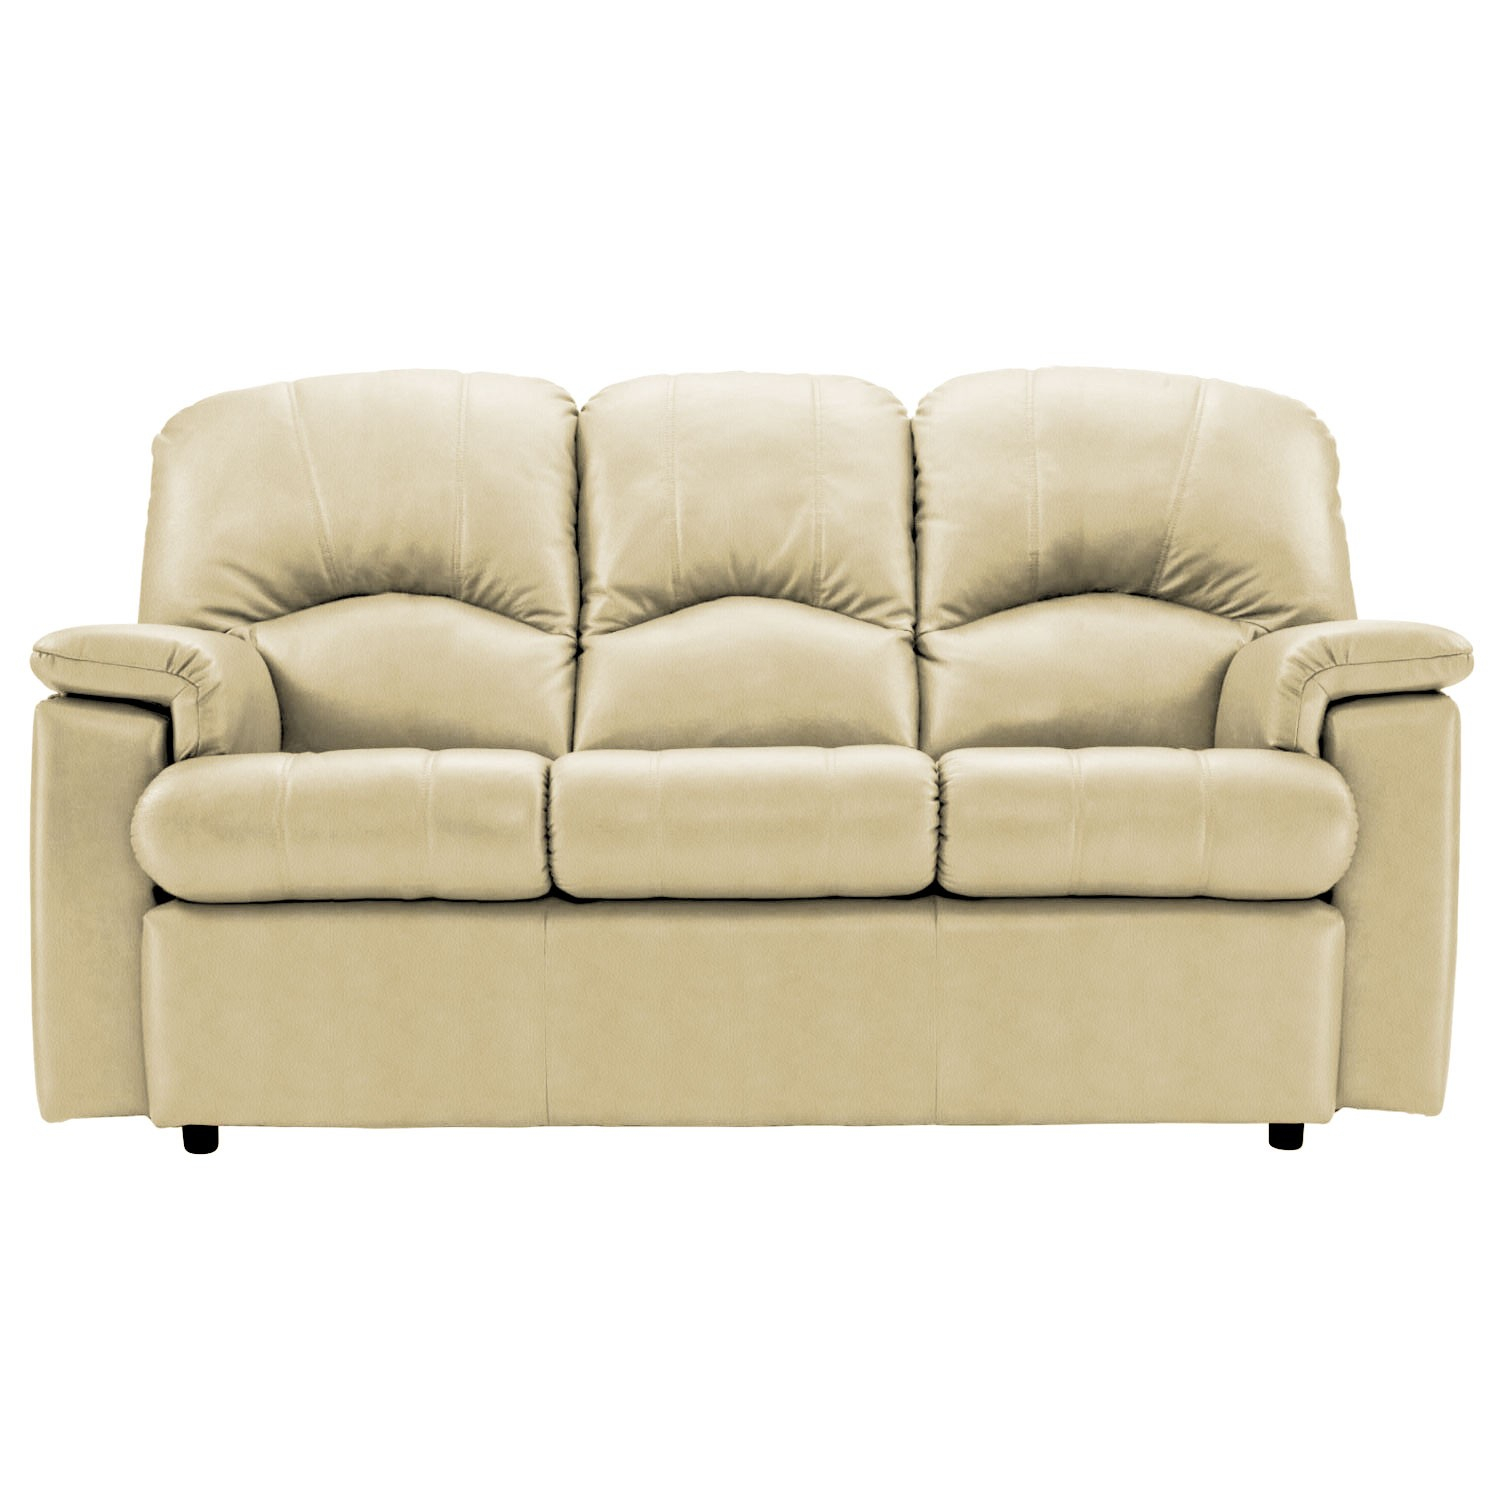 G Plan Chloe Three Seater Leather Sofa, Small In 3 Seater Leather Sofas (View 10 of 15)